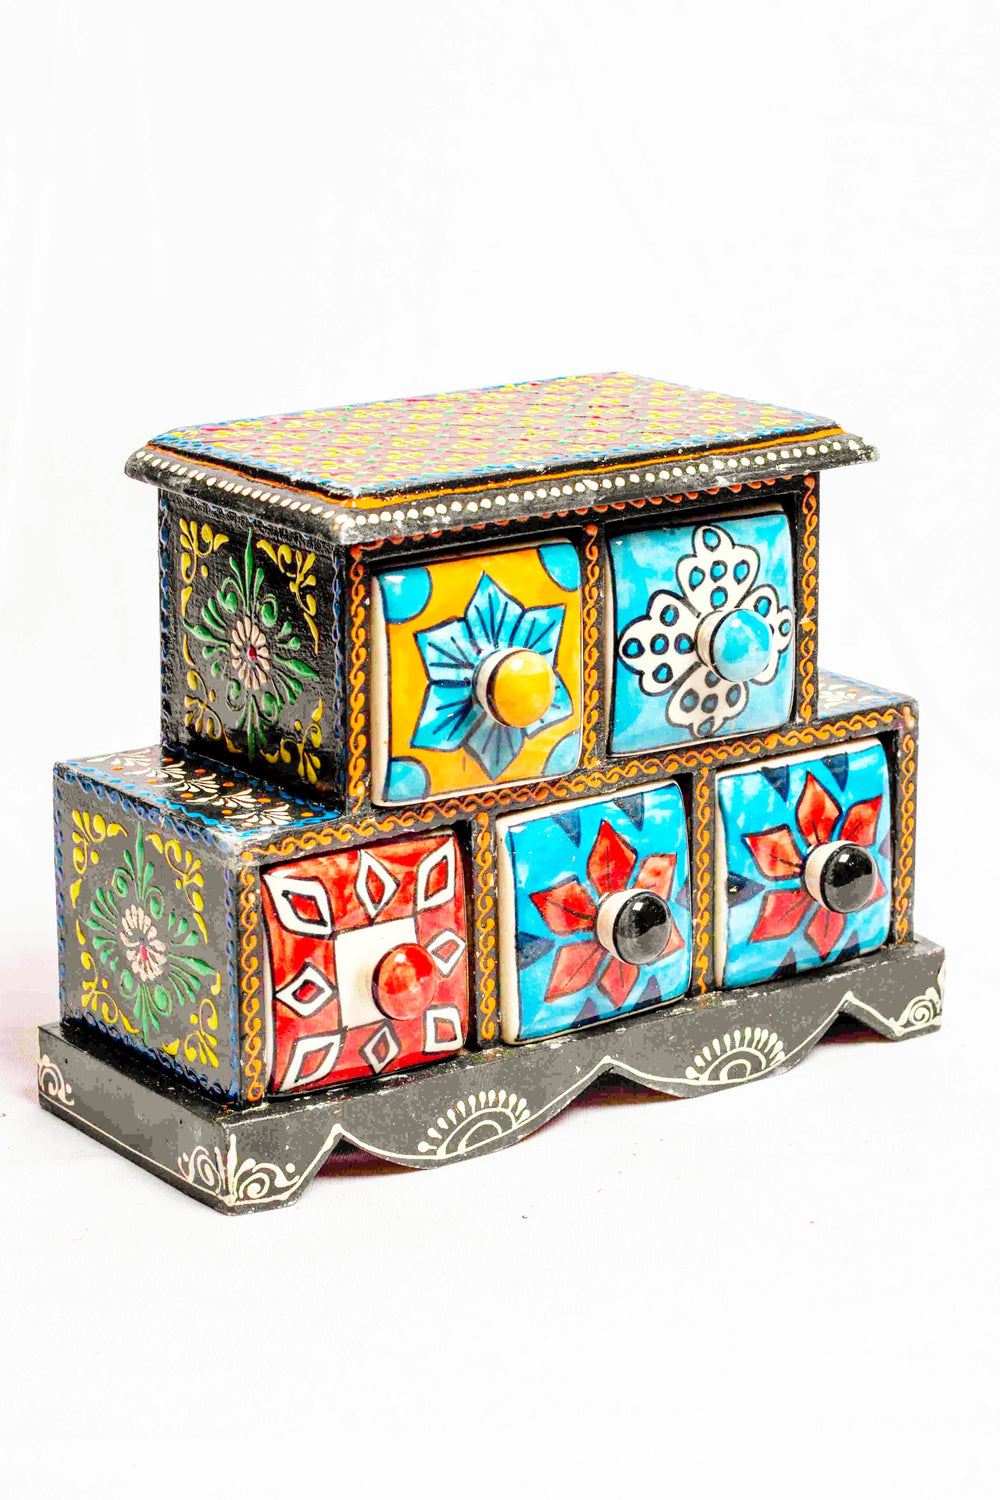 Chest of drawers in a black framed wooden box with painted motifs, with 5 ceramic drawers